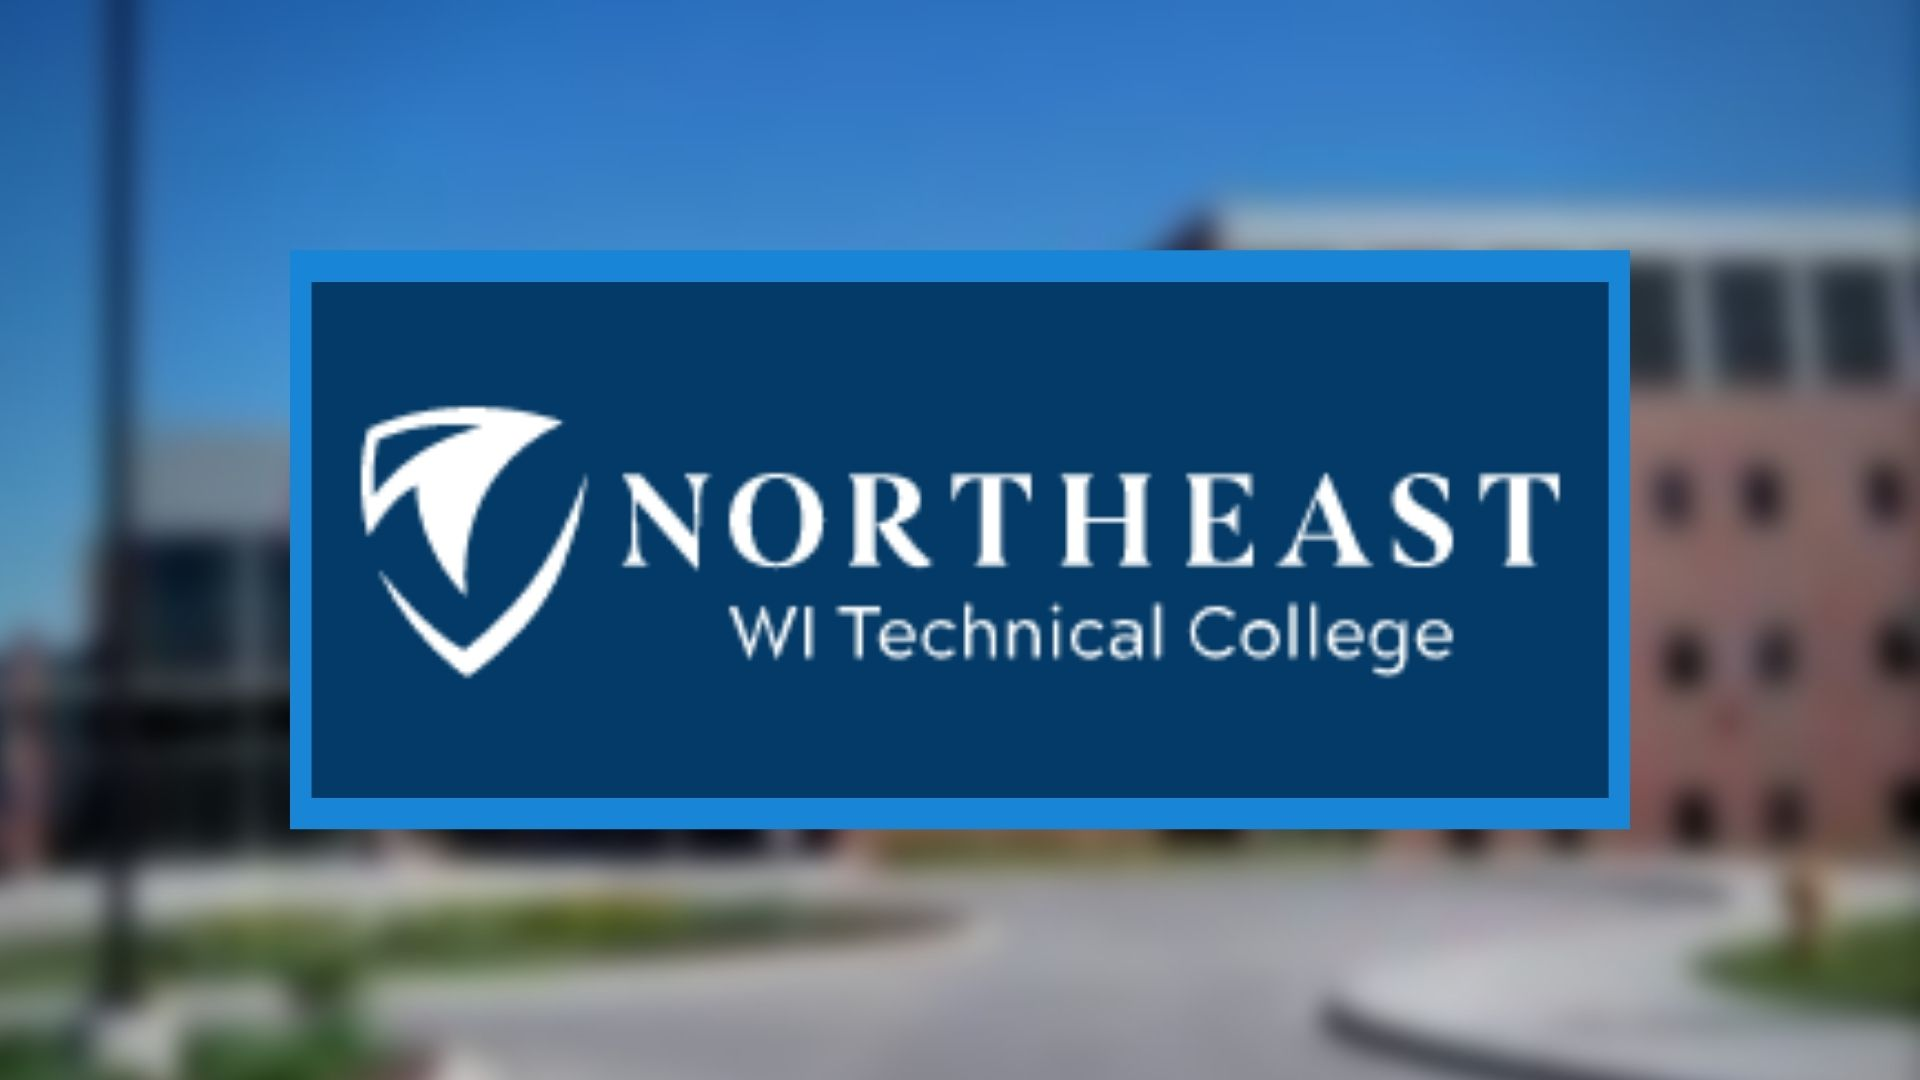 Northeast WI Technical College